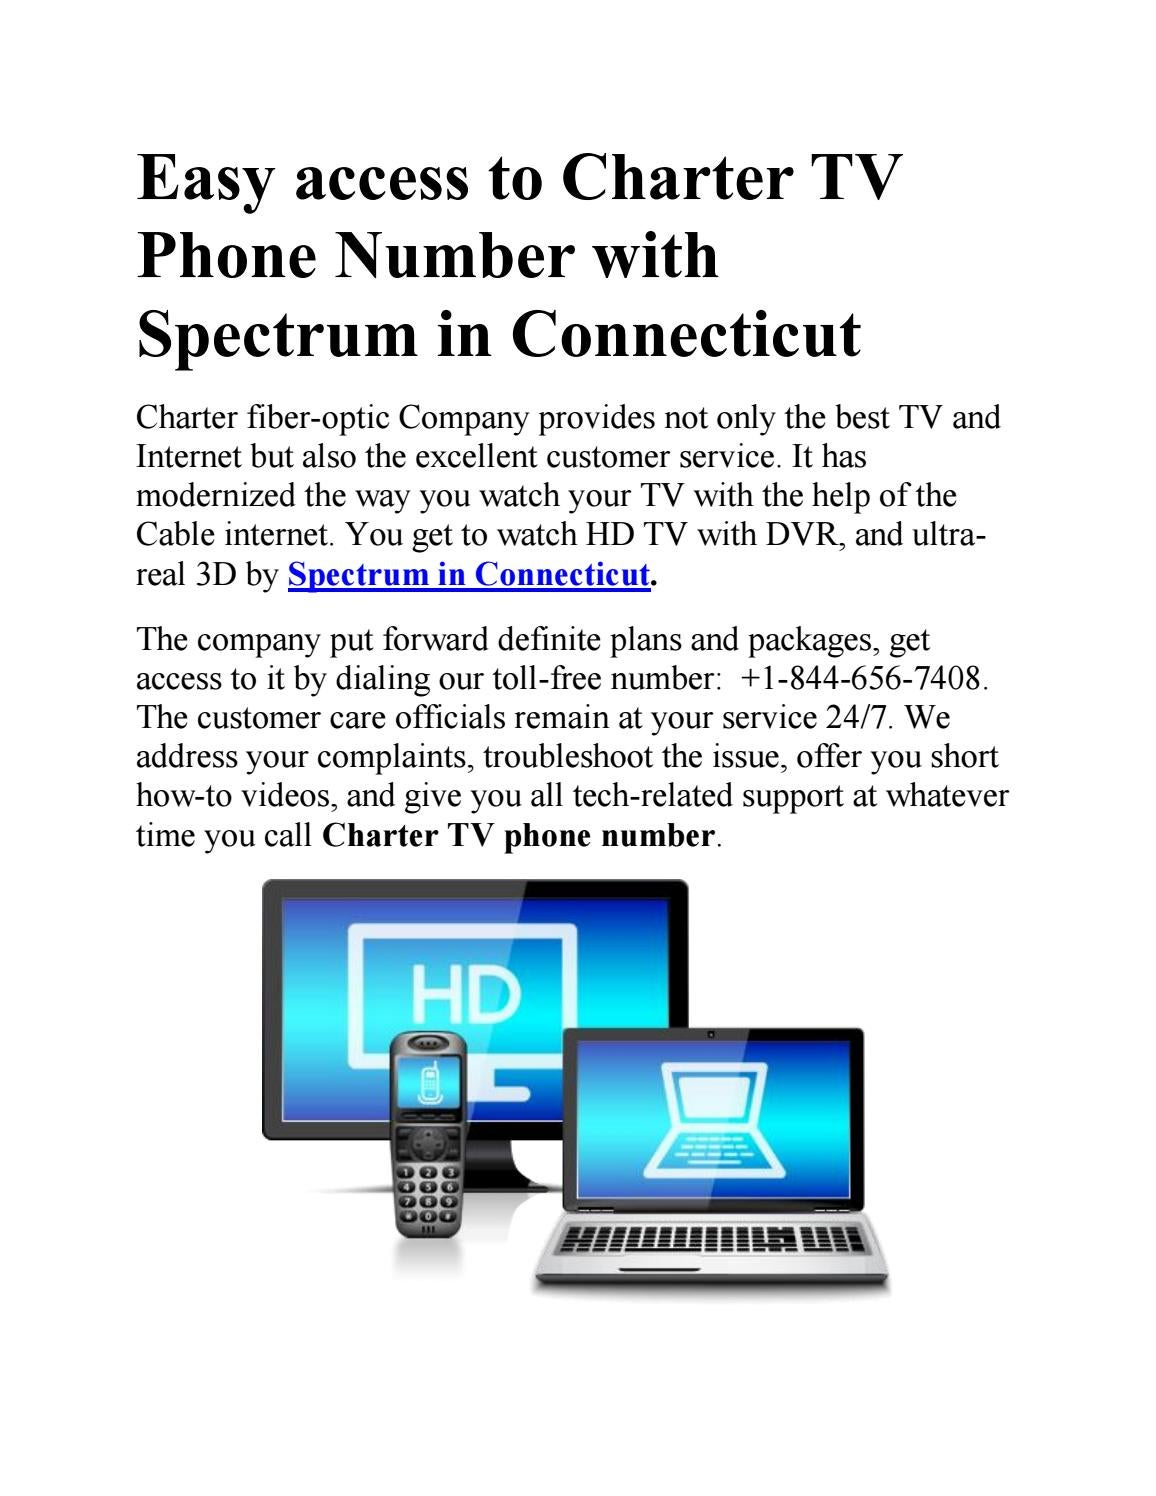 Easy access to charter tv phone number with spectrum in connecticut by My  Cable Internet - issuu